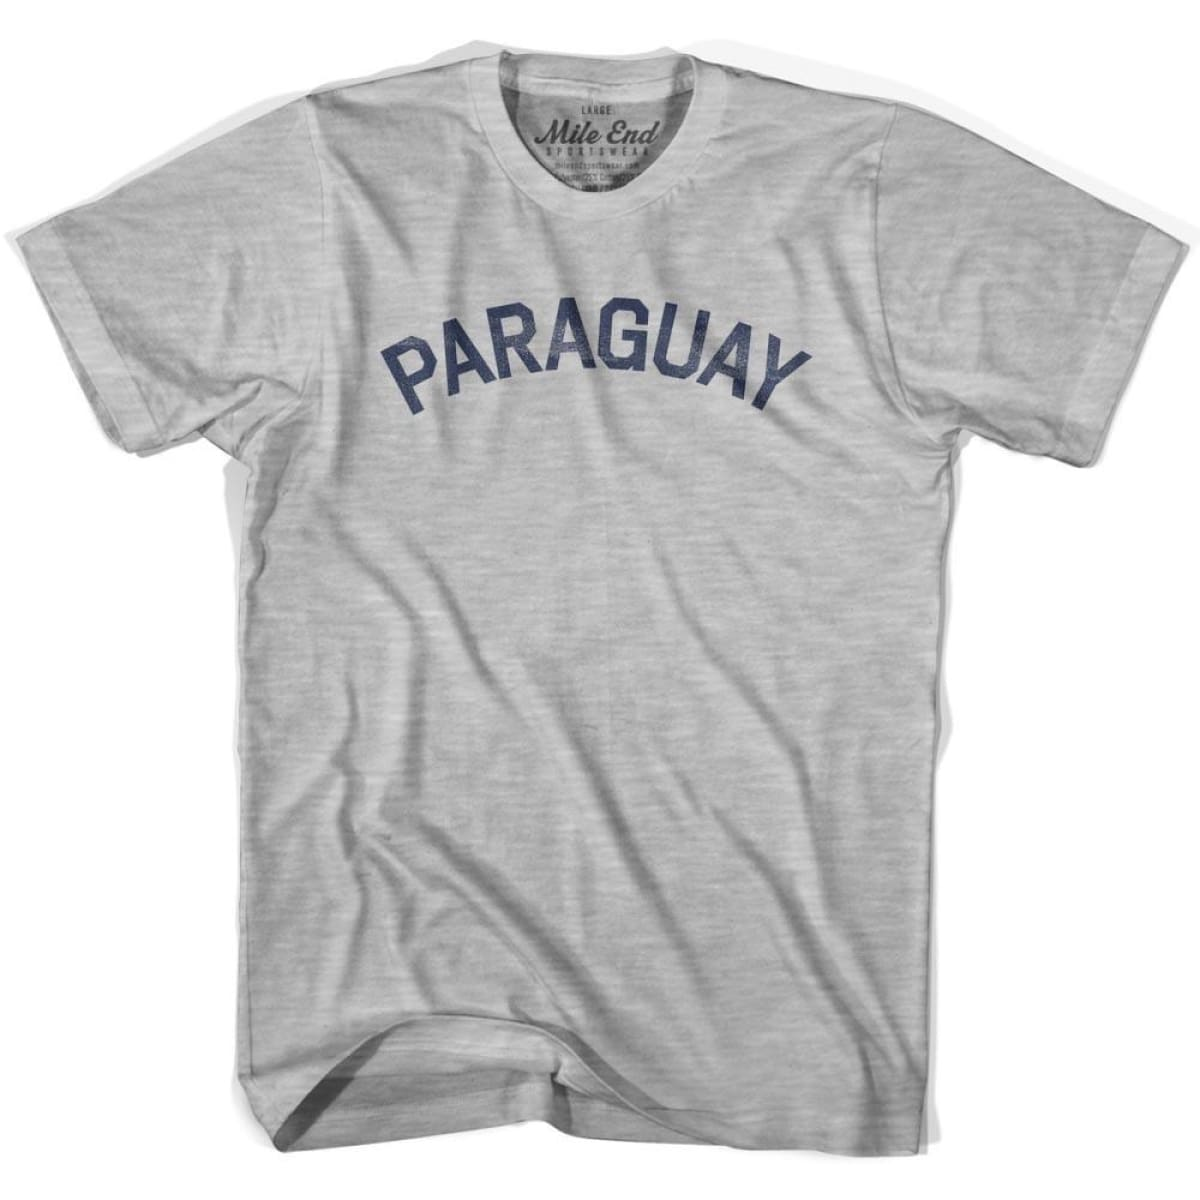 Paraguay City Vintage T-shirt - Grey Heather / Youth X-Small - Mile End City